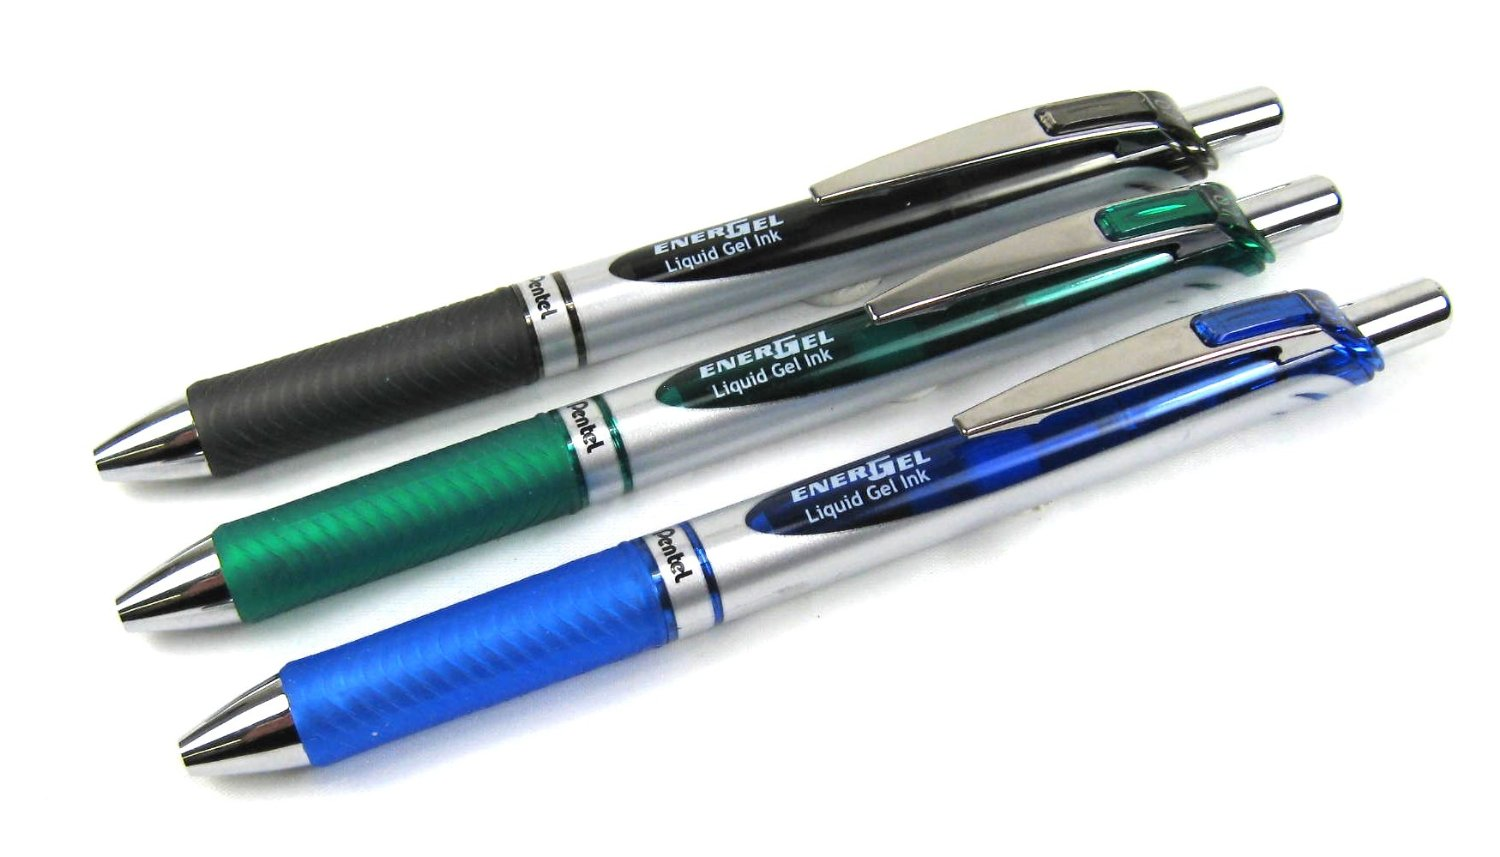 Pentel EnerGel Black, Green and Blue Liquid Gel Roller Pens (3pcs) - Assorted [BL77]